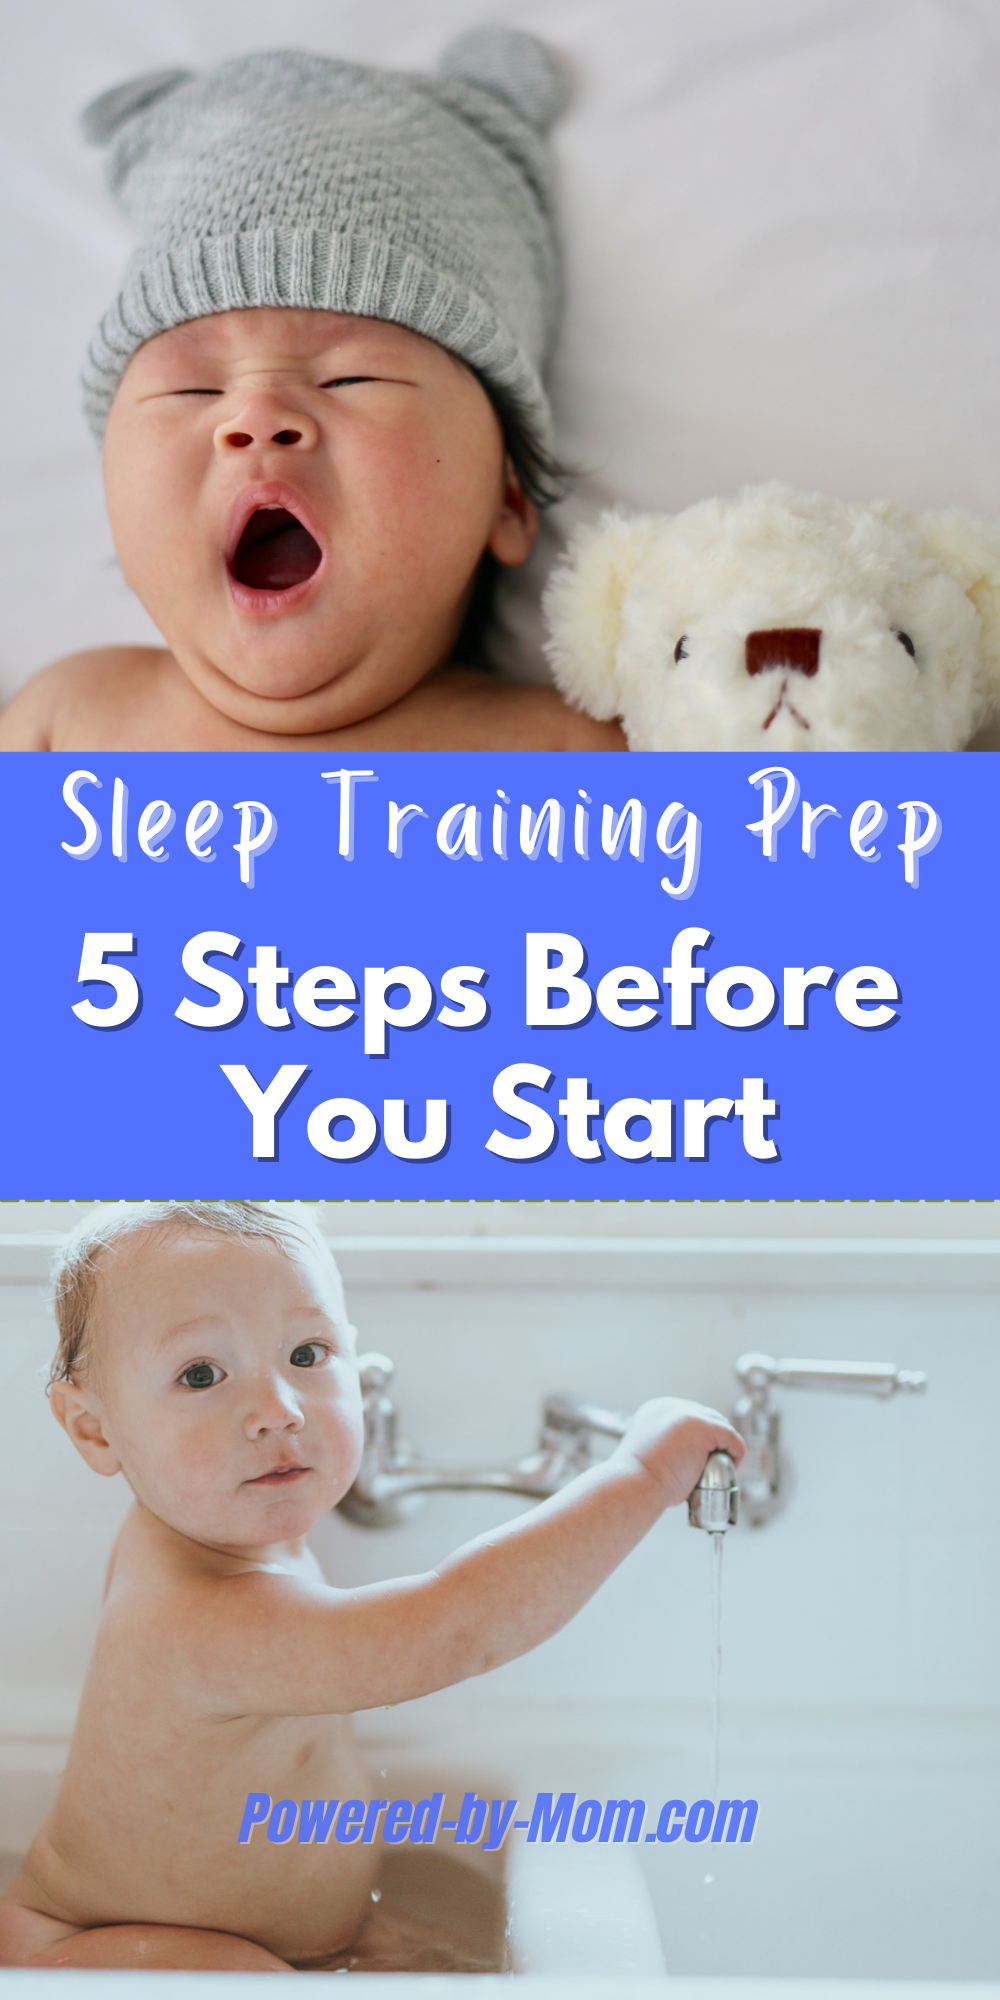 From creating a cozy sleep environment for babies to planning a sleep schedule, there are some tips you need to consider when you're doing sleep training prep.